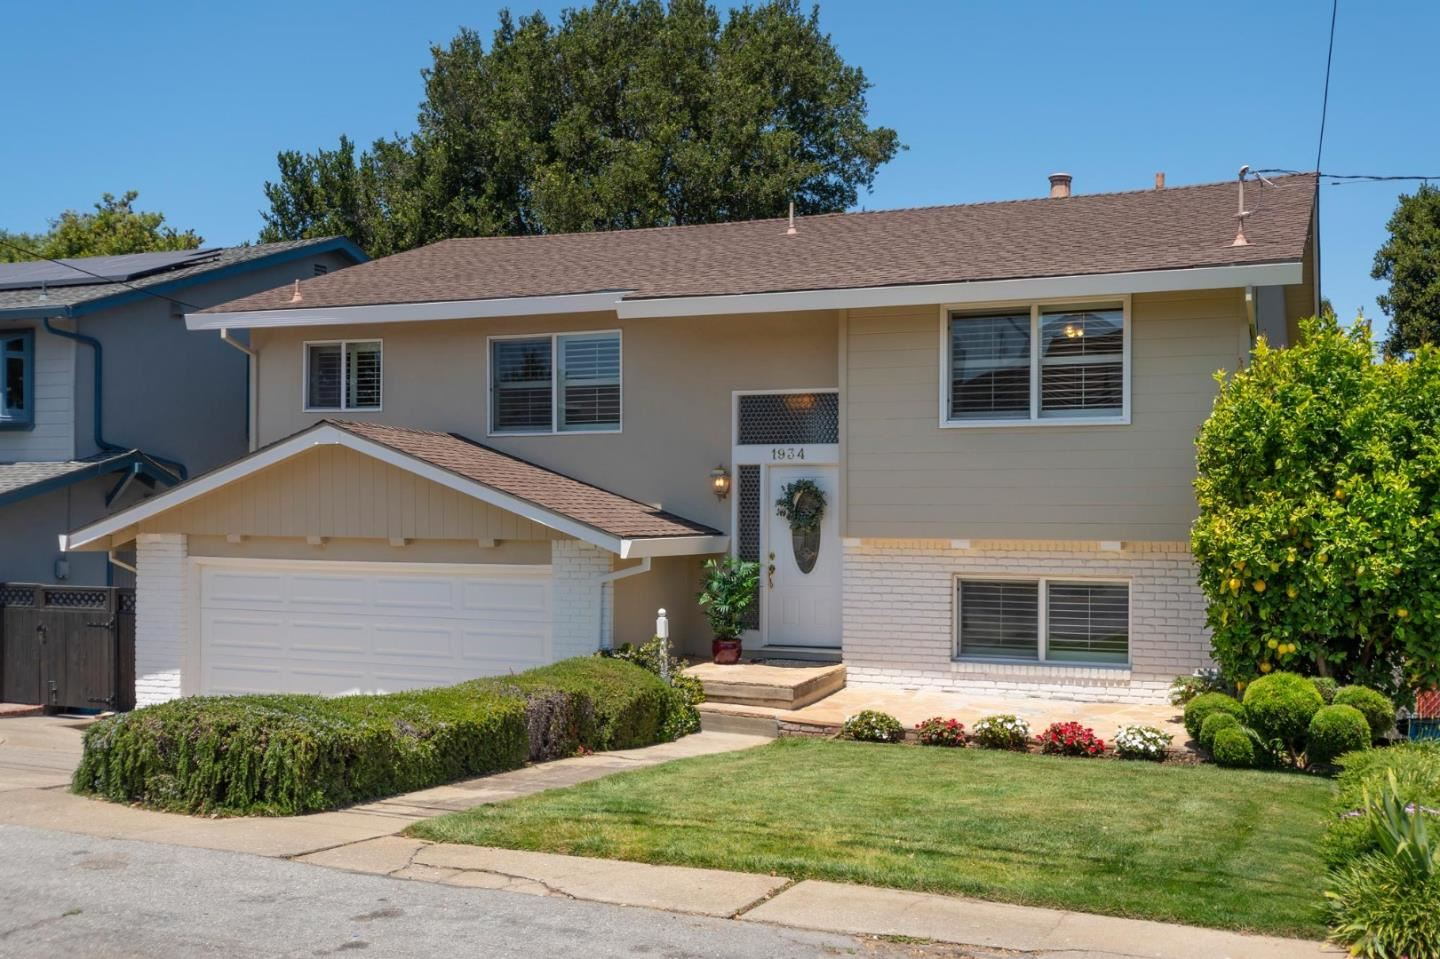 Photo for 1934 Bayview Avenue, BELMONT, CA 94002 (MLS # ML81849612)